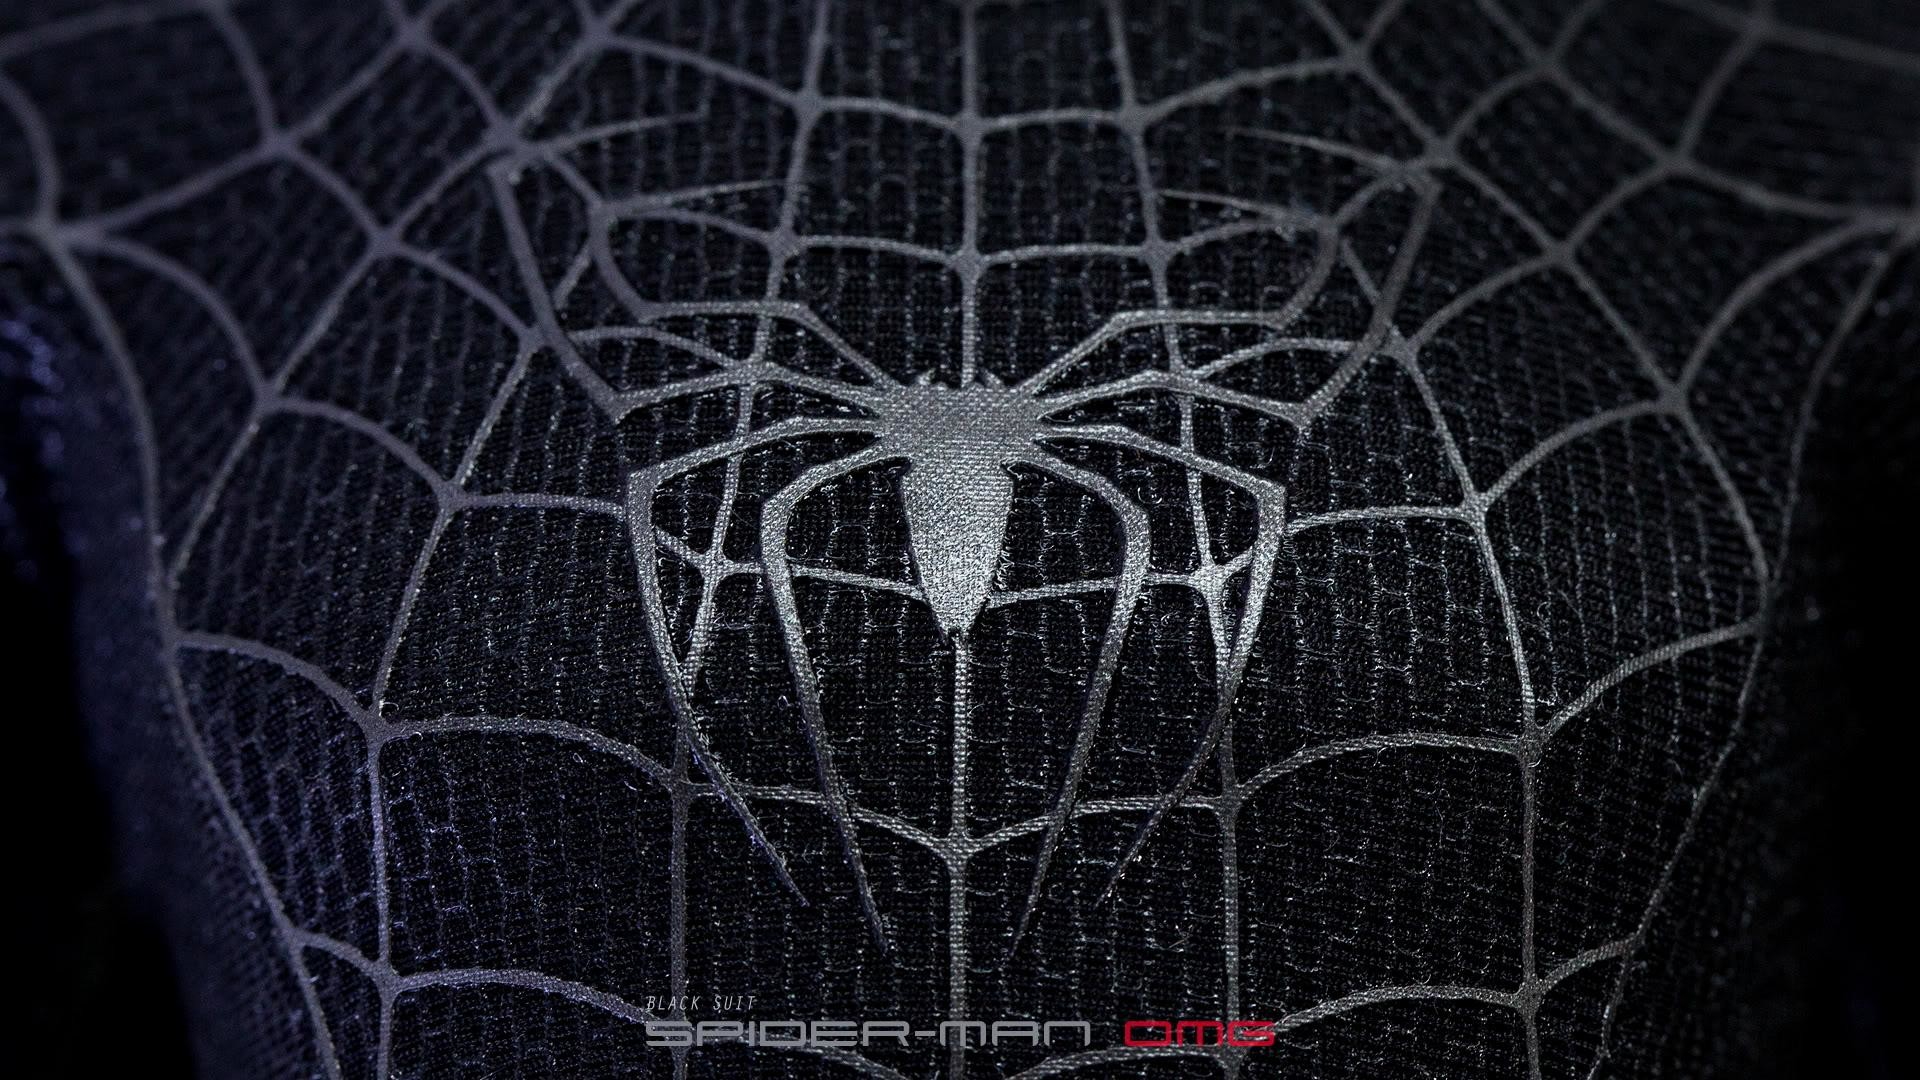 Spiderman iphone wallpaper hd 83 images - Black and white spiderman wallpaper ...